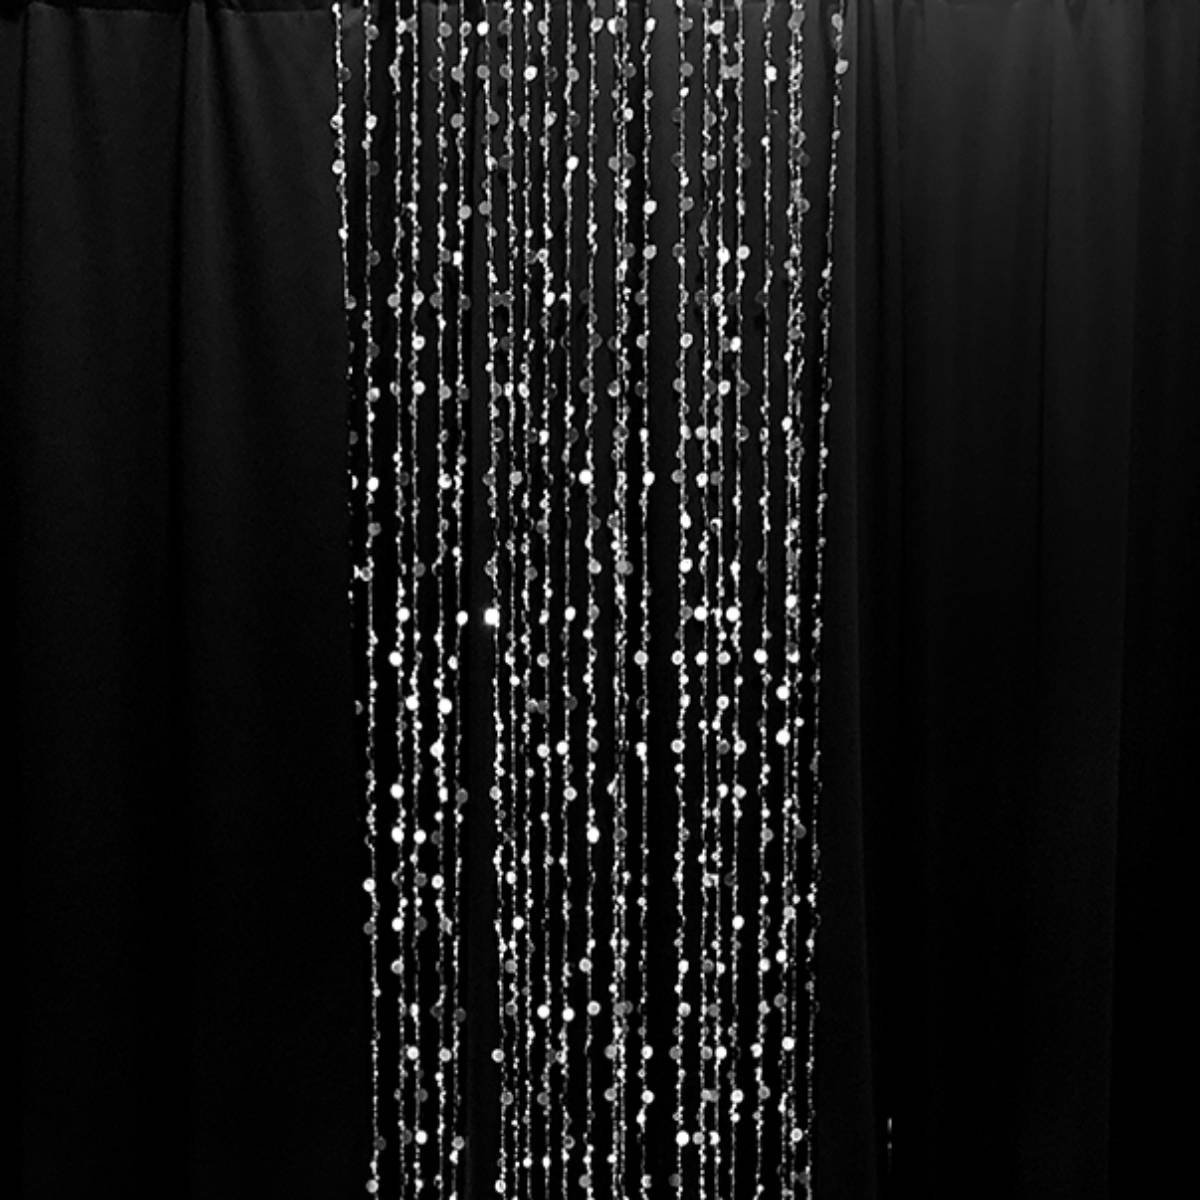 Beaded Curtain Metallic Slver Iridescent 12FT